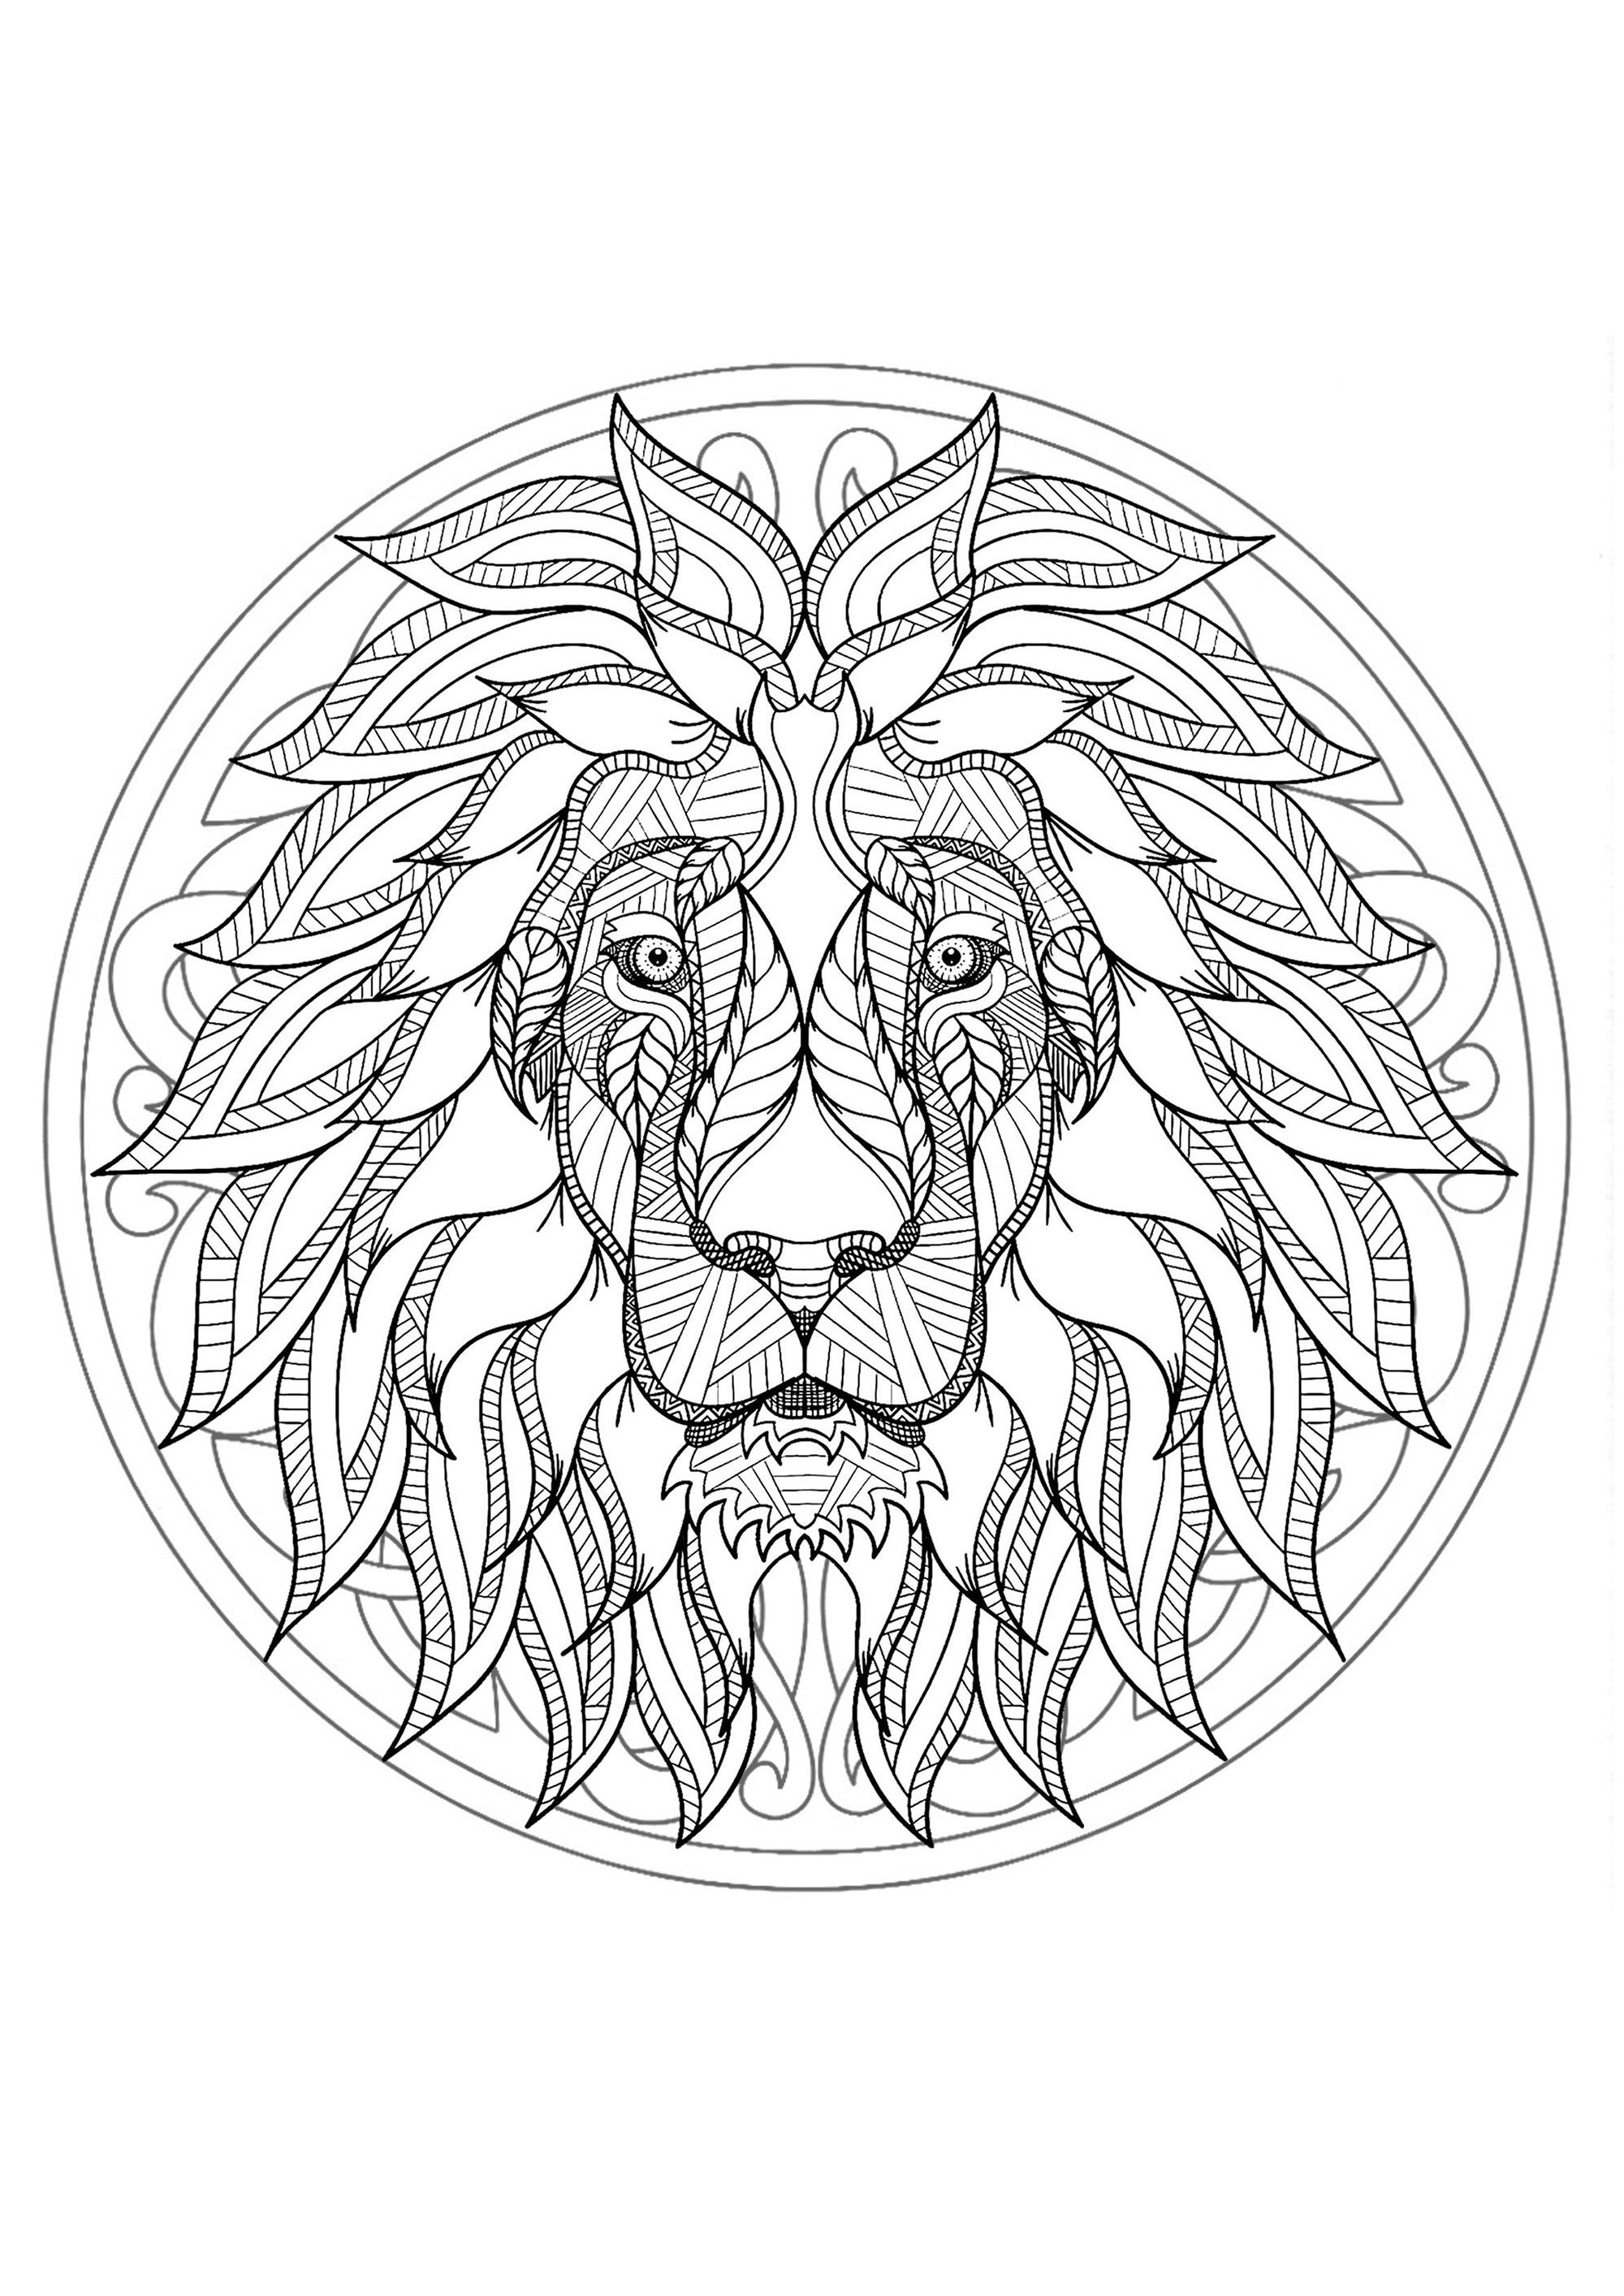 Inside The Earth Coloring Pages